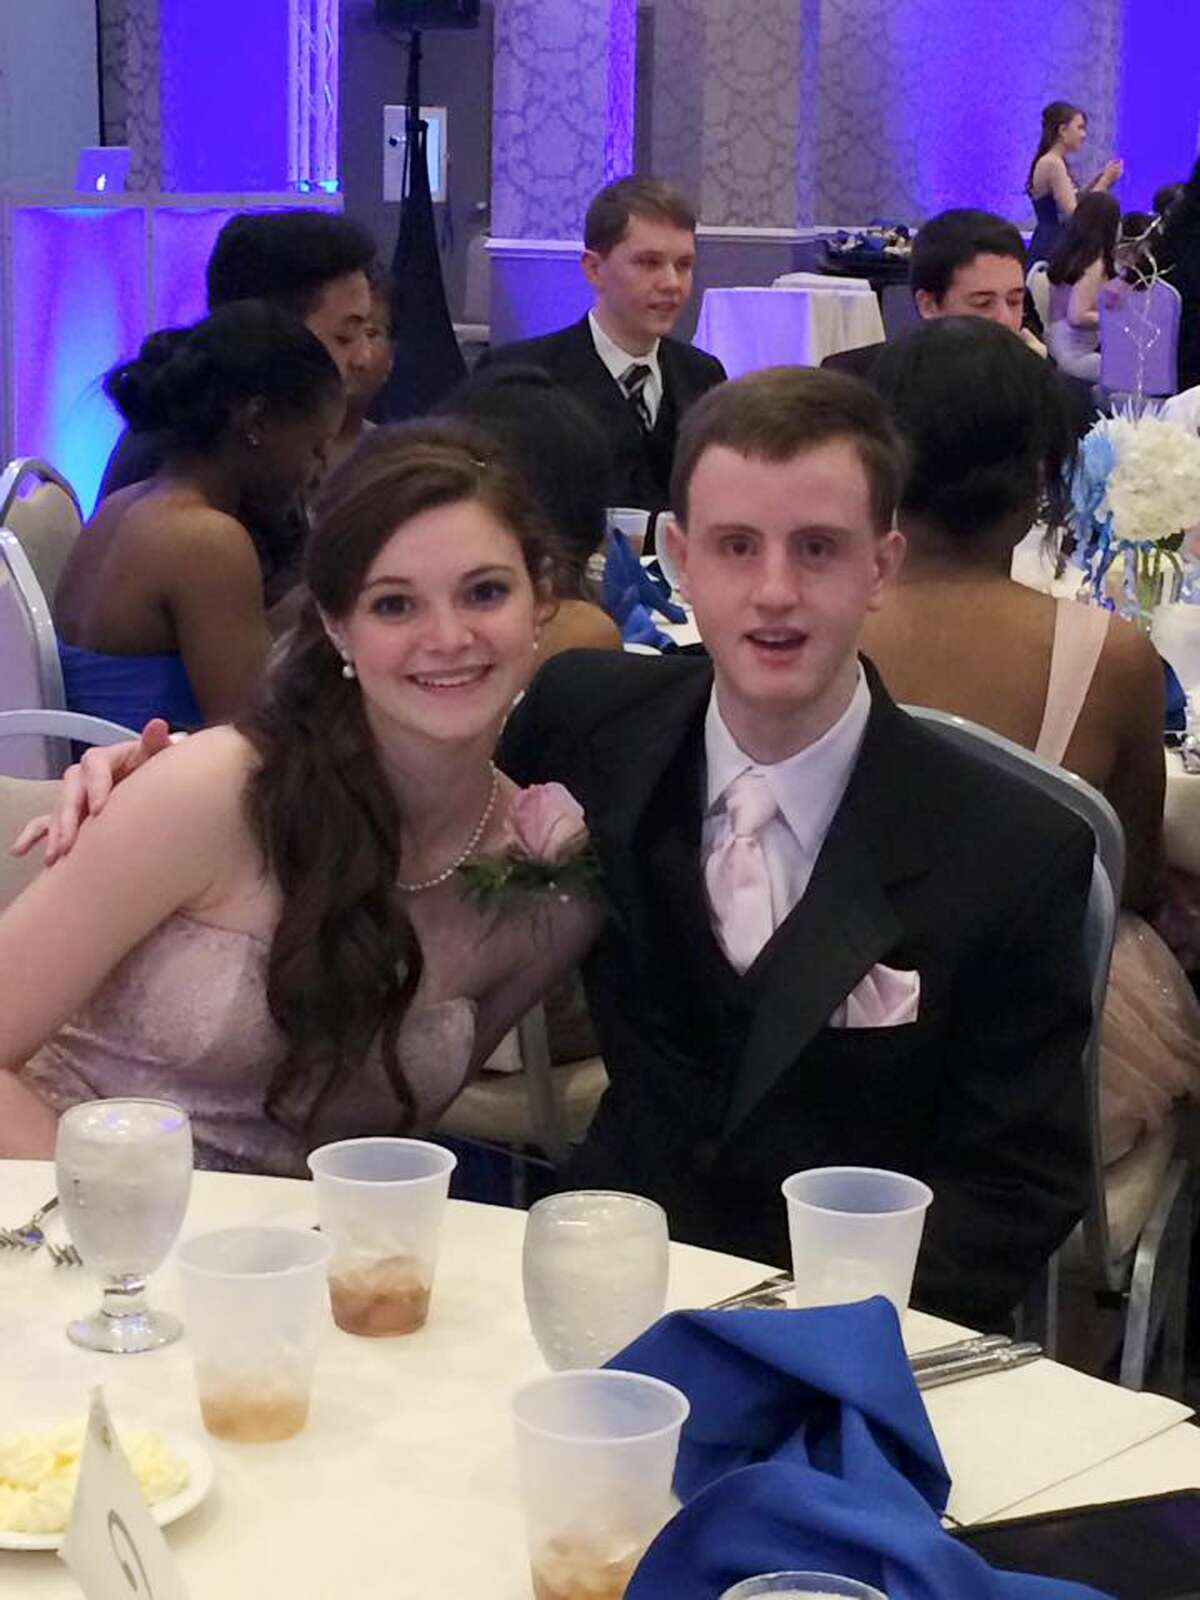 This March 28, 2015 photo provided by Kathty Lovetere shows Kaitlin McCarthy and Matty Marcone, students at Canton High School in Canton, Mass., at the schoolís junior prom. Kaitlin invited Matty, who has special needs, to be her date and they were crowned prom king and queen. Prom culture has changed so that some teens are now using the big night as a platform for social change and as an opportunity to be inclusive rather than exclusive. (Kathy Lovetere via AP)